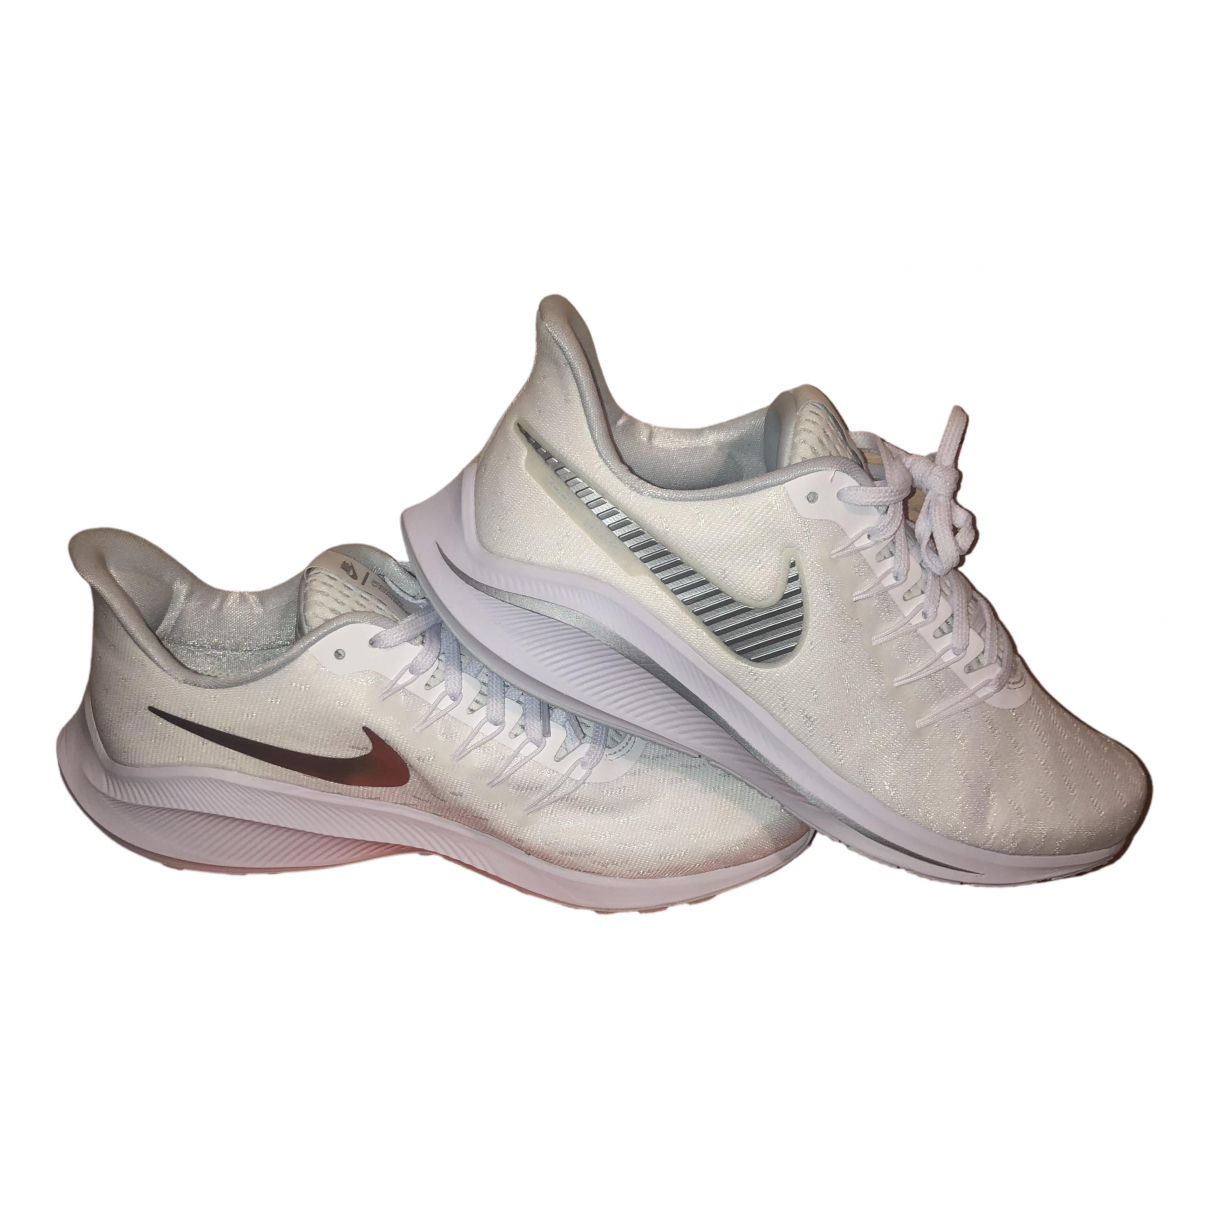 Nike - Baskets Zoom pour homme - blanc